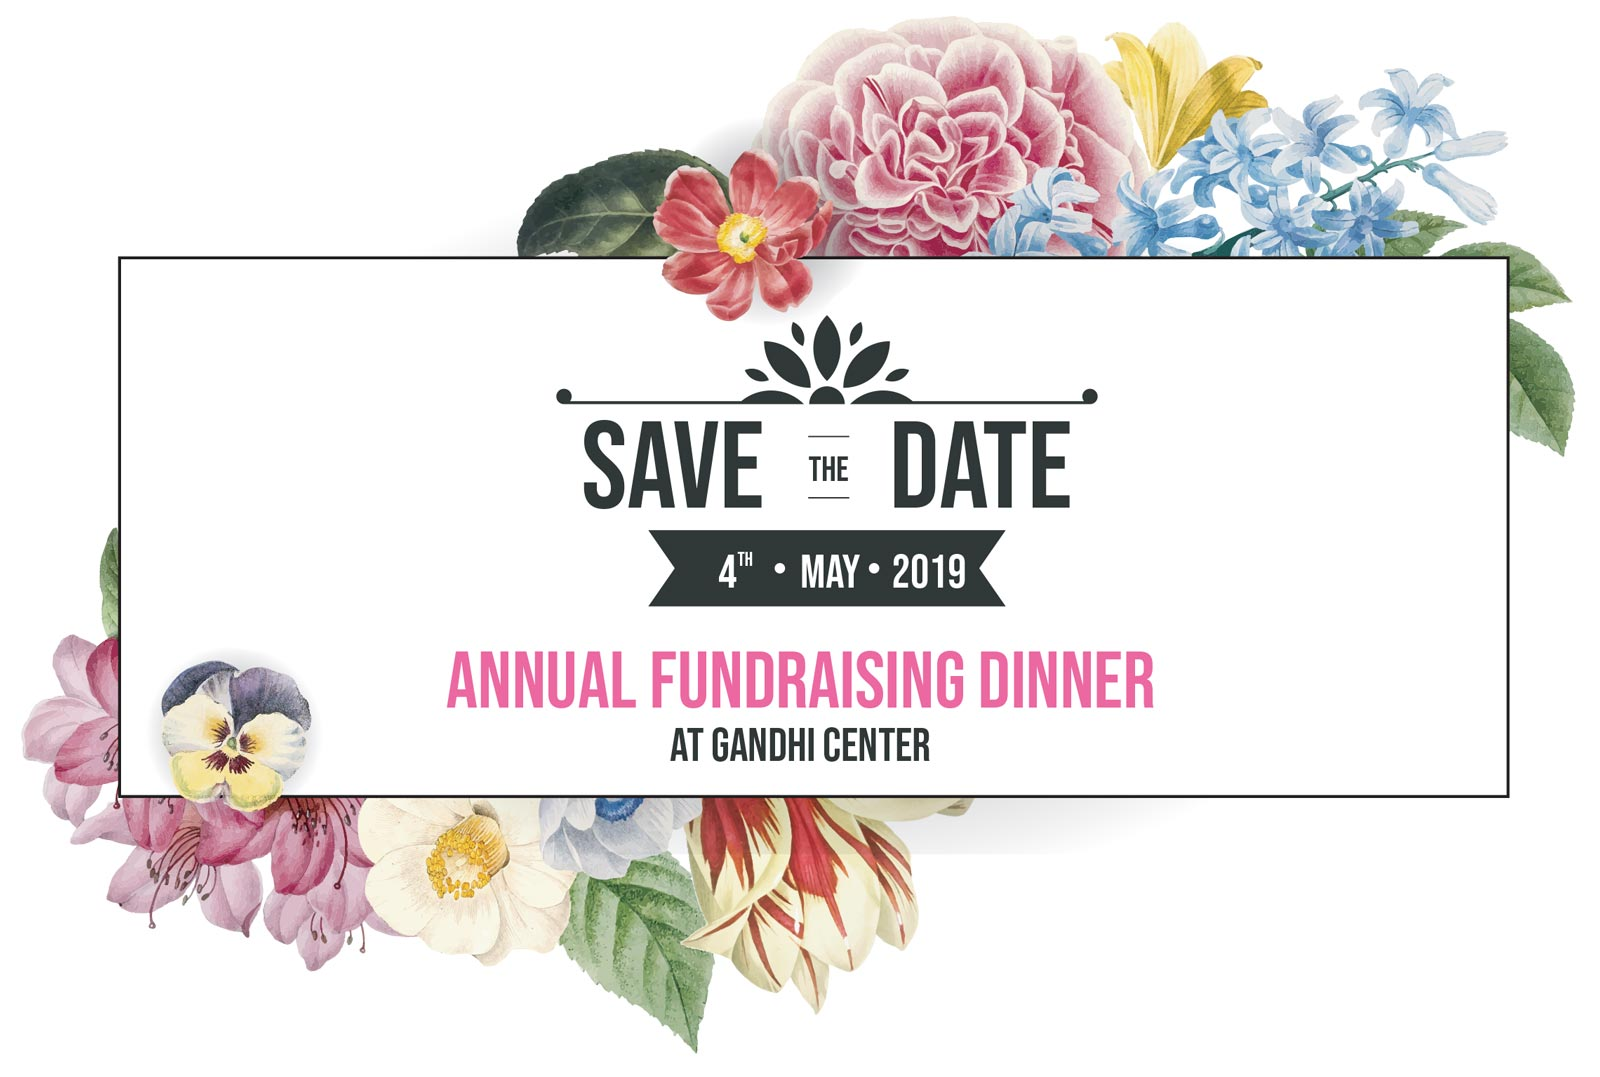 Annual Fundraising Dinner 2019